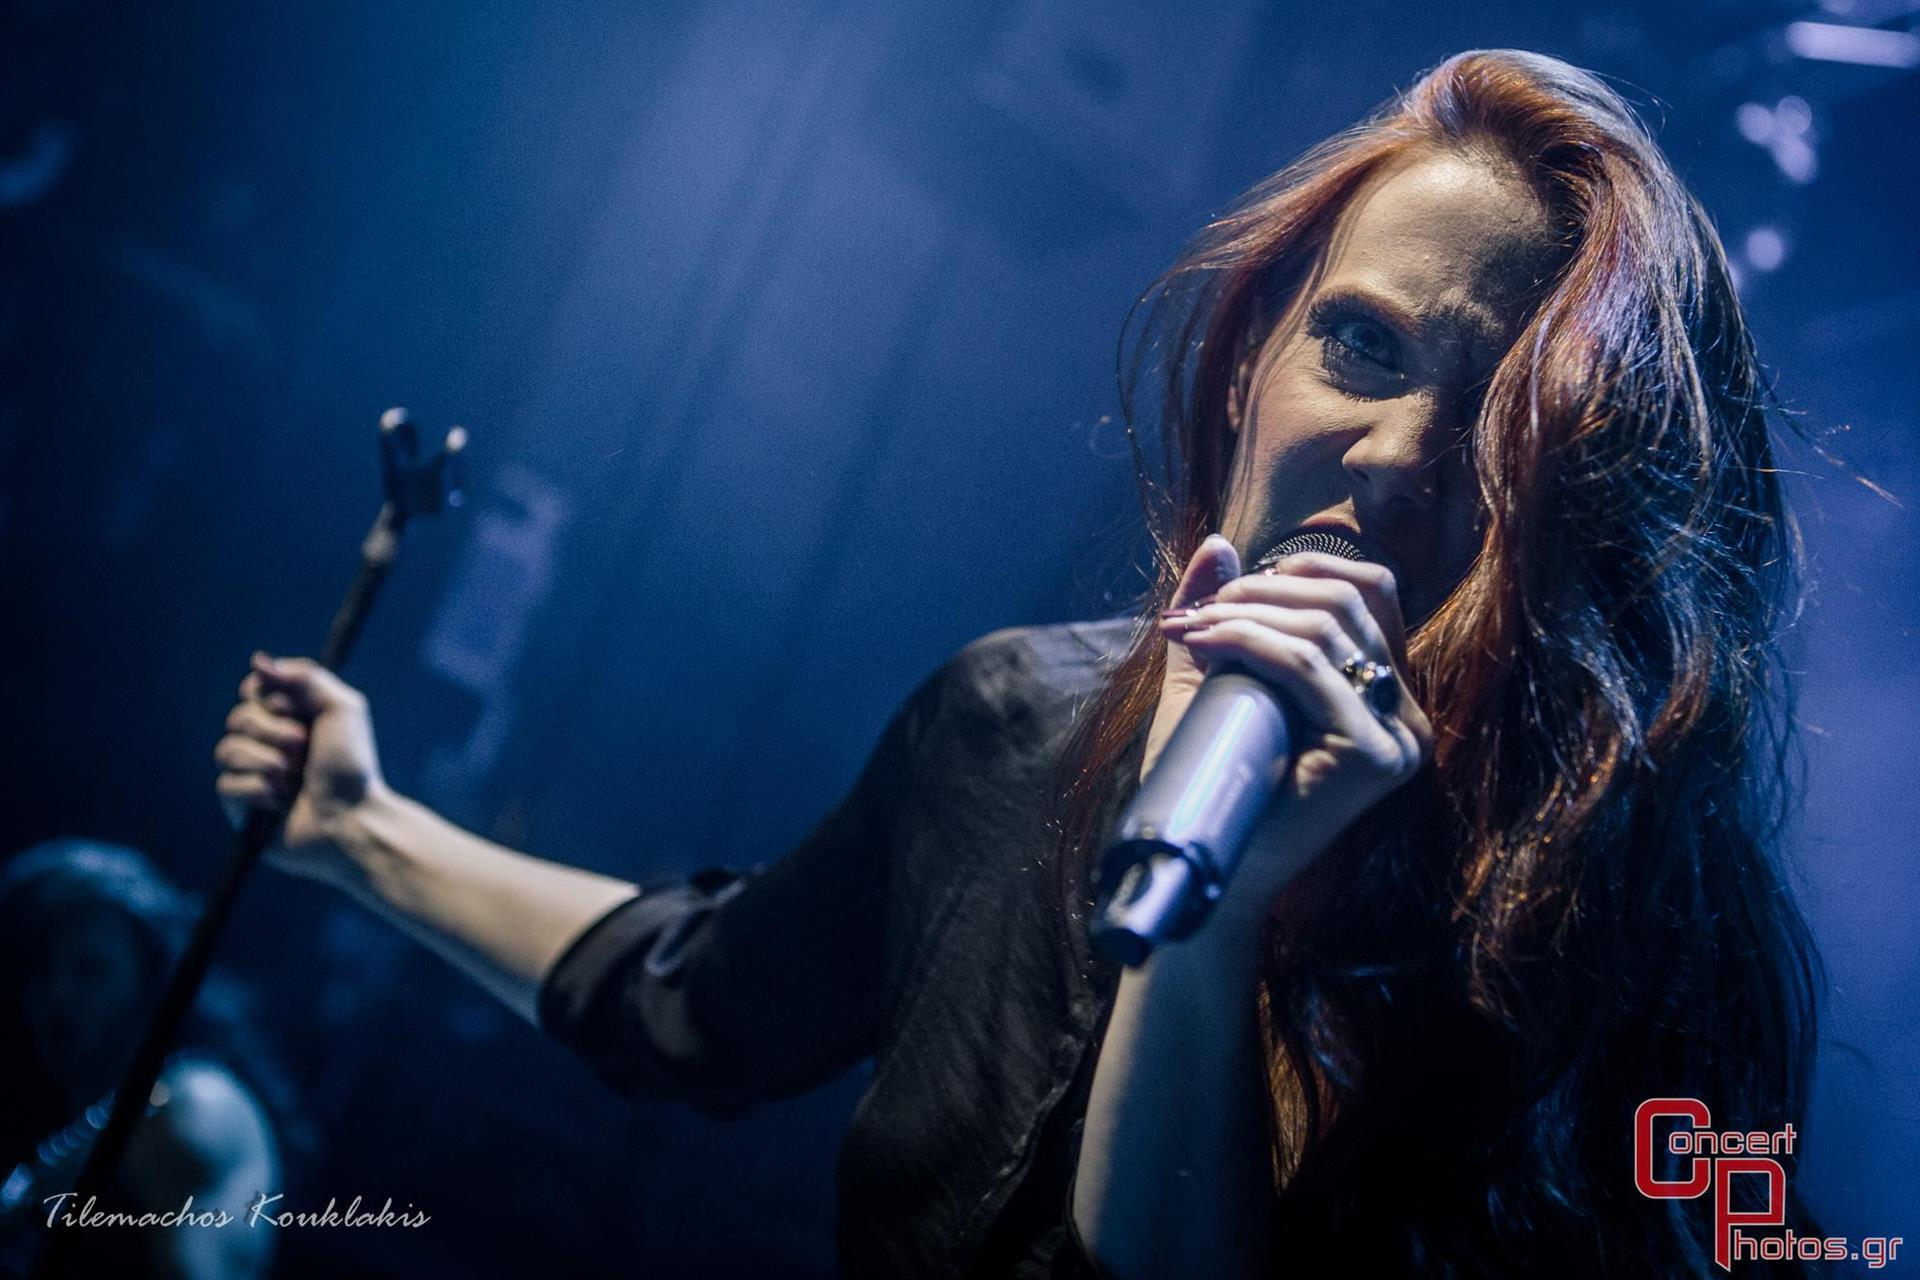 EPICA Jaded Star Fuzz Club-EPICA Jaded Star Fuzz Club photographer:  - Epica_06